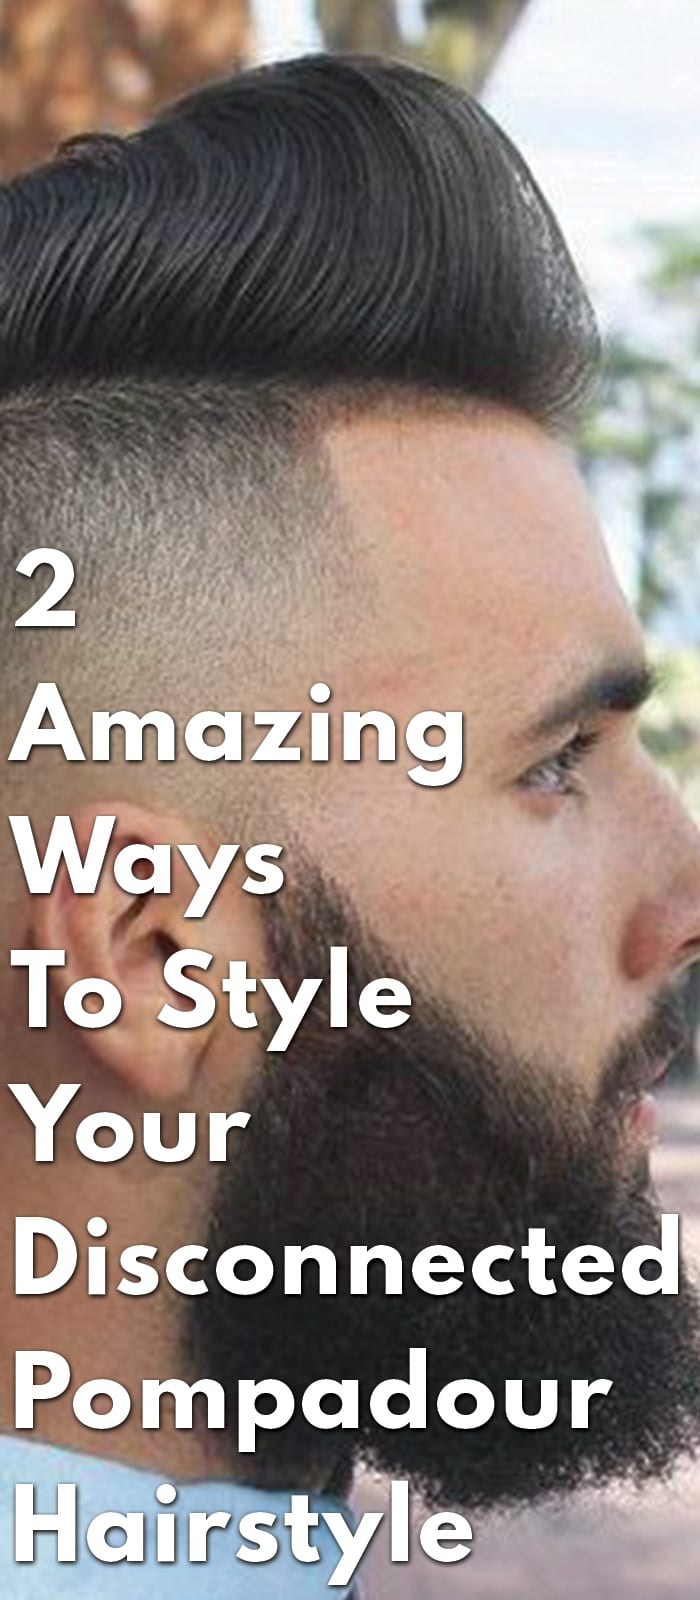 2 Amazing Ways To Style Your Disconnected Pompadour Hairstyle